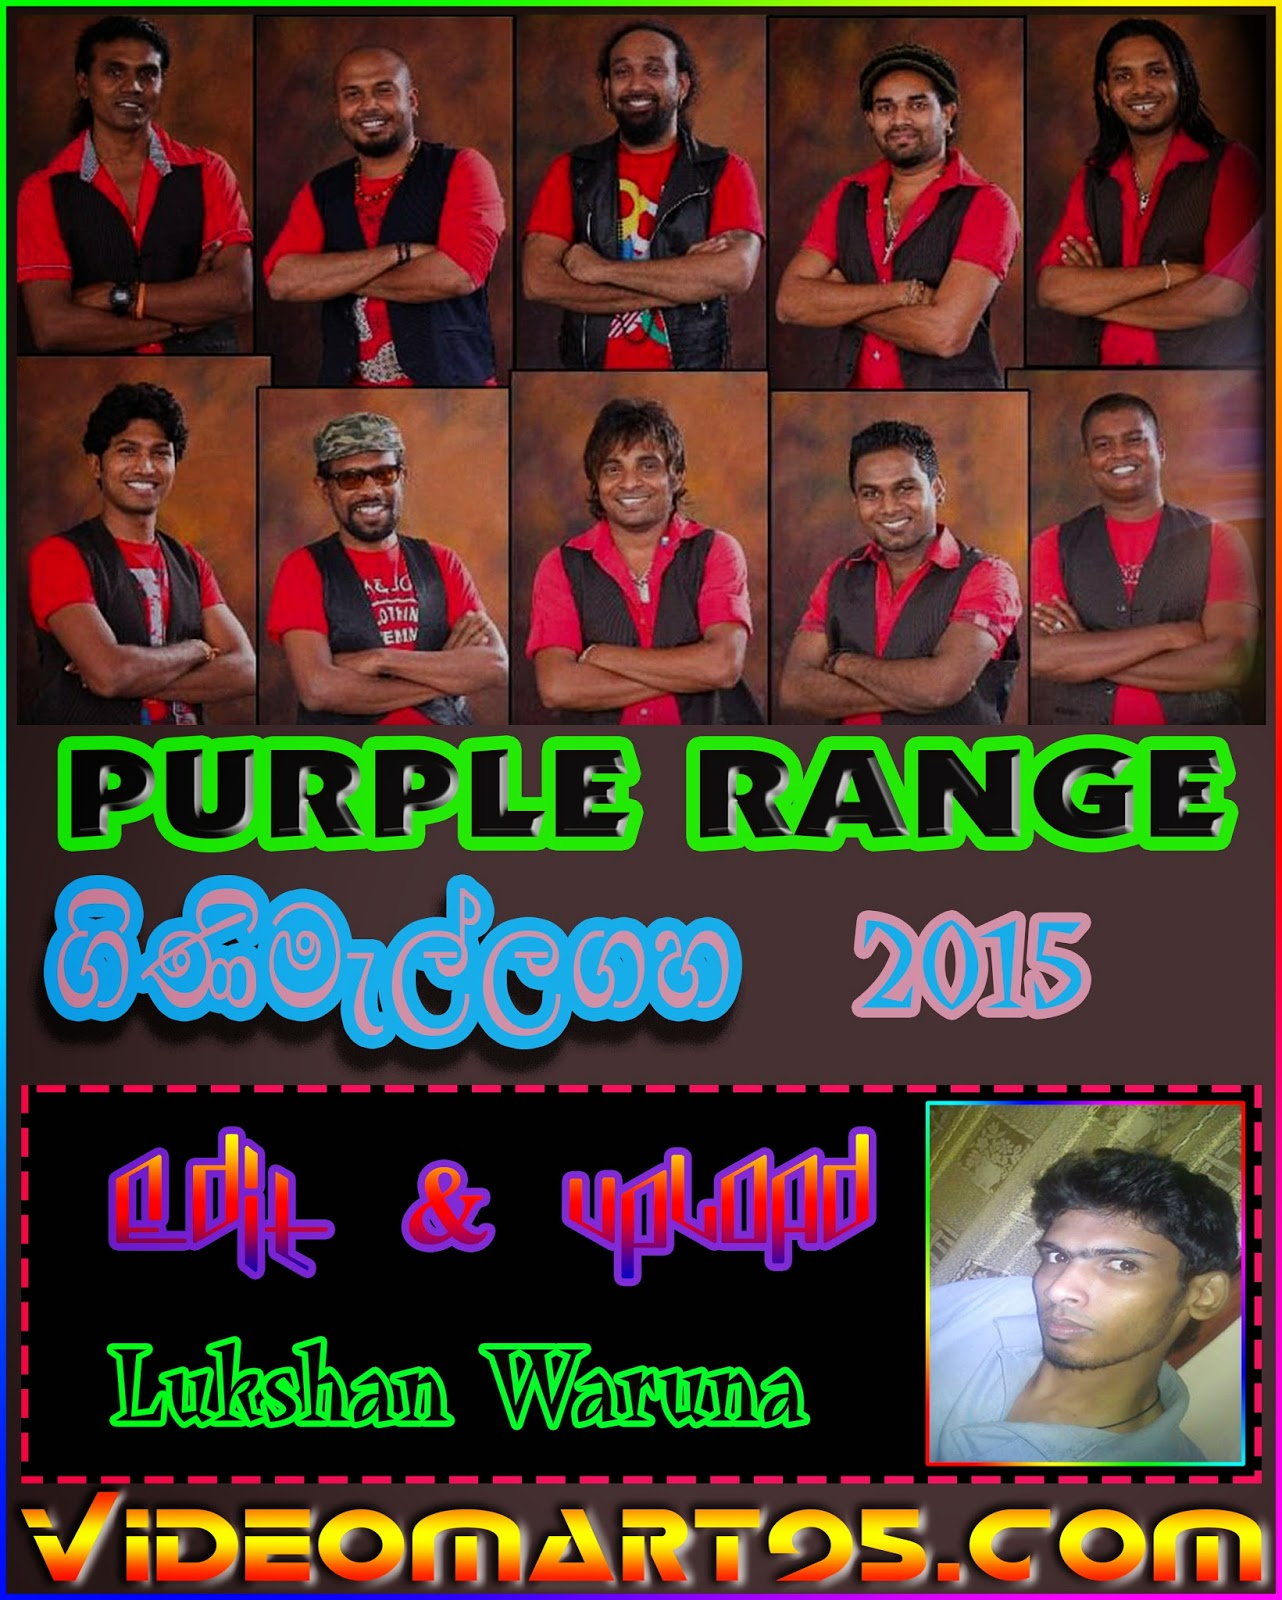 PURPLE RANGE LIVE IN BADDEGAMA GINIMELLAGAHA 2015